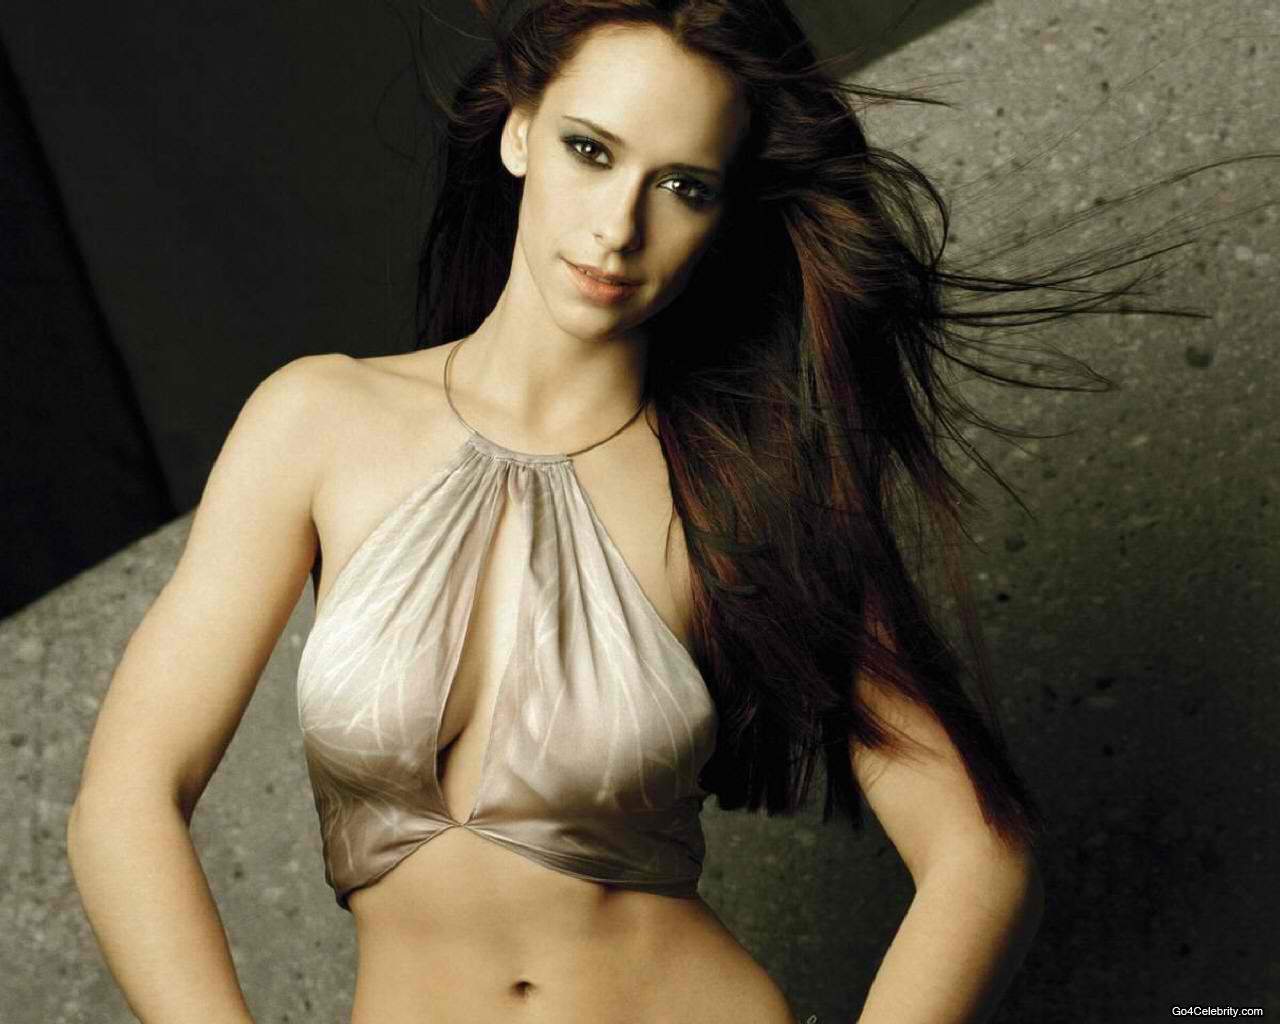 Free Love Hot Wallpaper : Jennifer Love Hewitt Wallpaper, Bikini Picture, Sexy Lingerie Photo and Hot Images Download